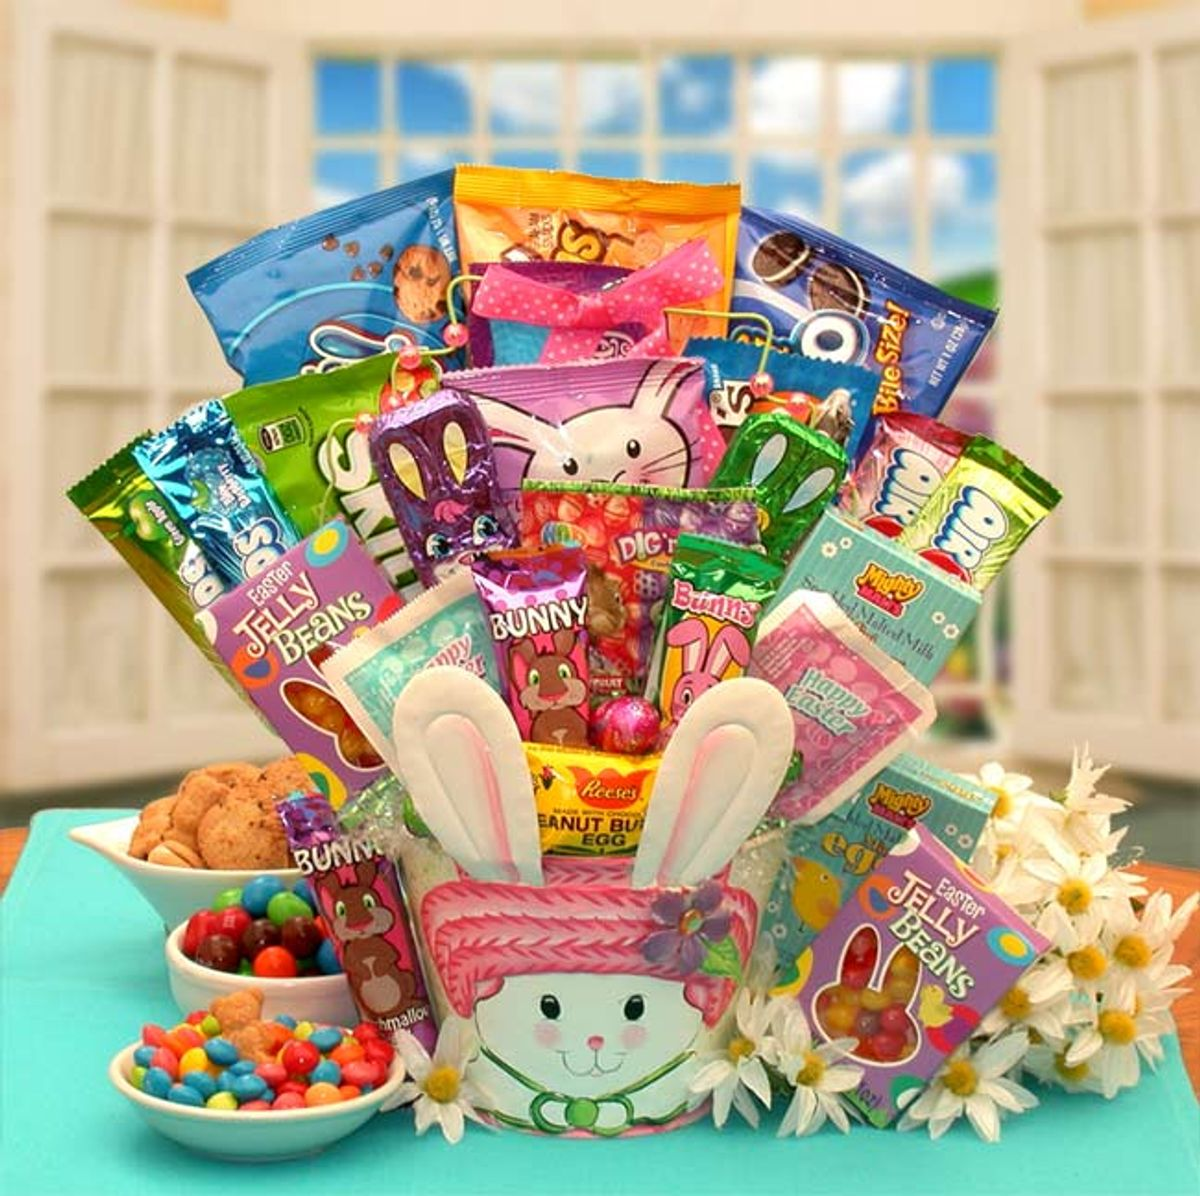 Easter Candy Rankings: From the Worst To The Best